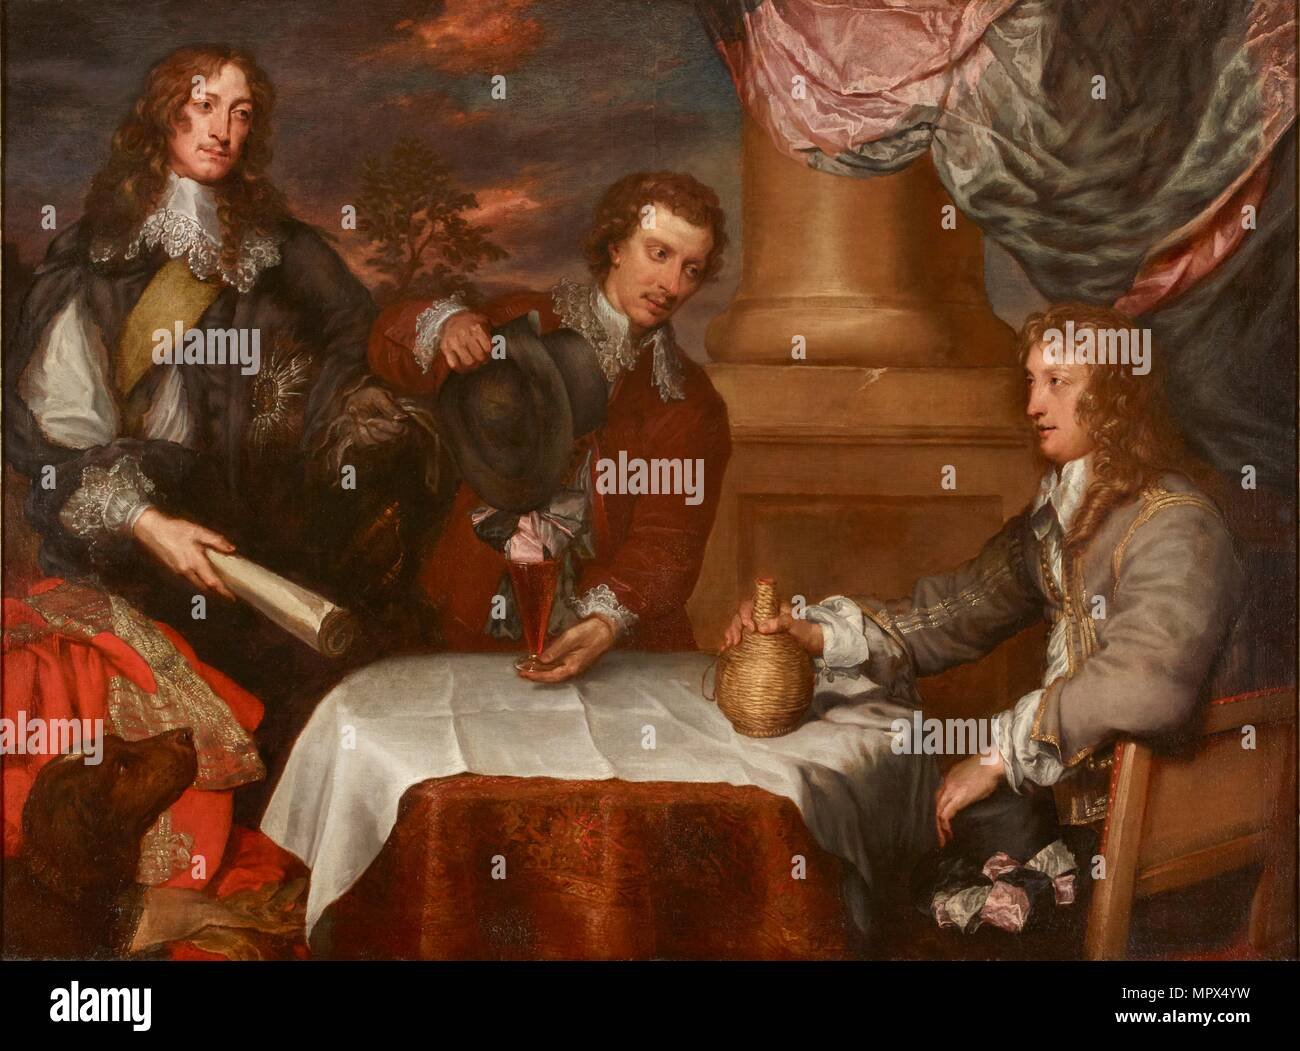 Portrait of Prince Rupert, Colonel William Legge and Colonel John Russell, 1645-1646. Artist: William Dobson. - Stock Image